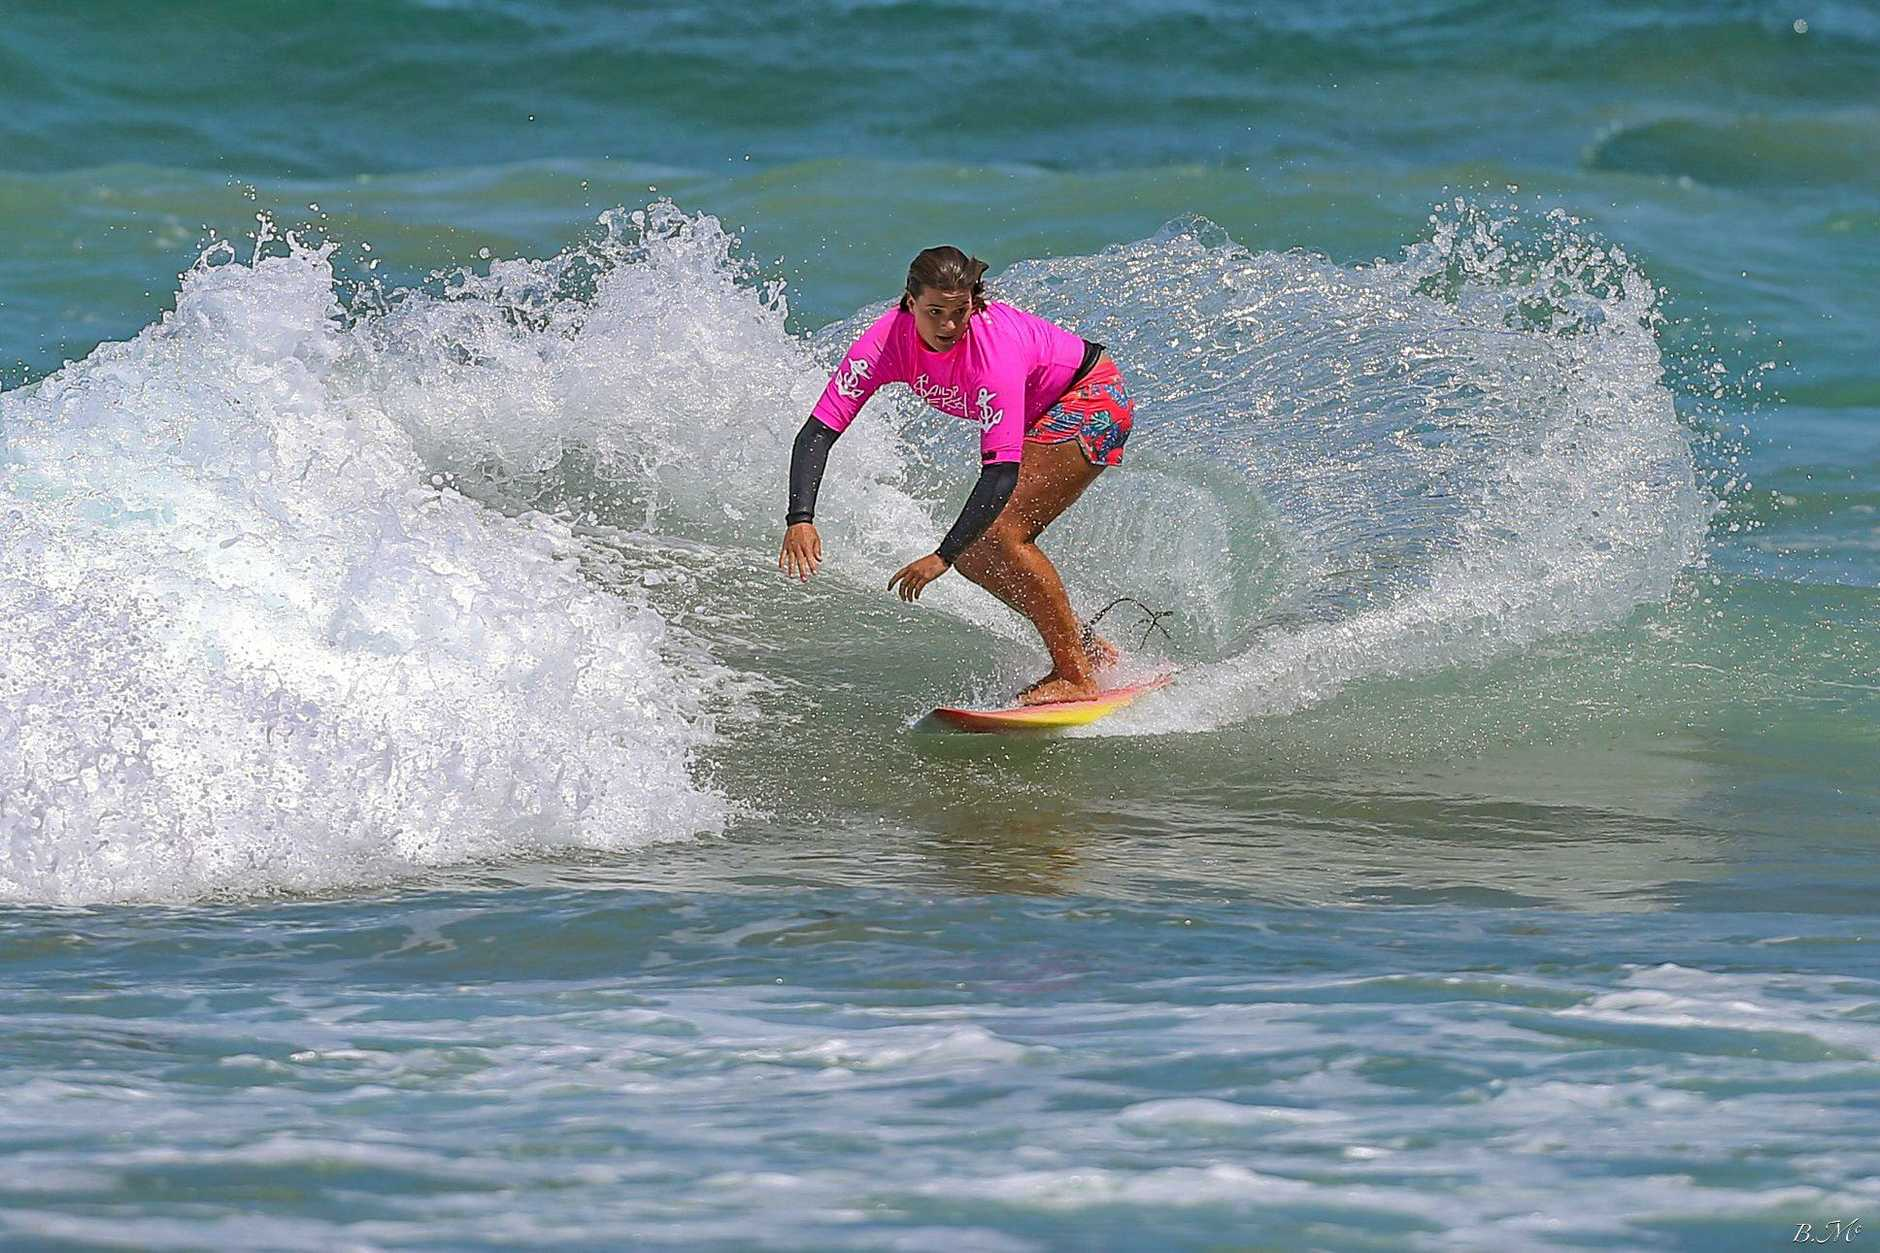 Grace Styman Lane will be surfing with her twin sister Audrey for DBah Boardriders together with Doyle twins Amiya and Brodie.